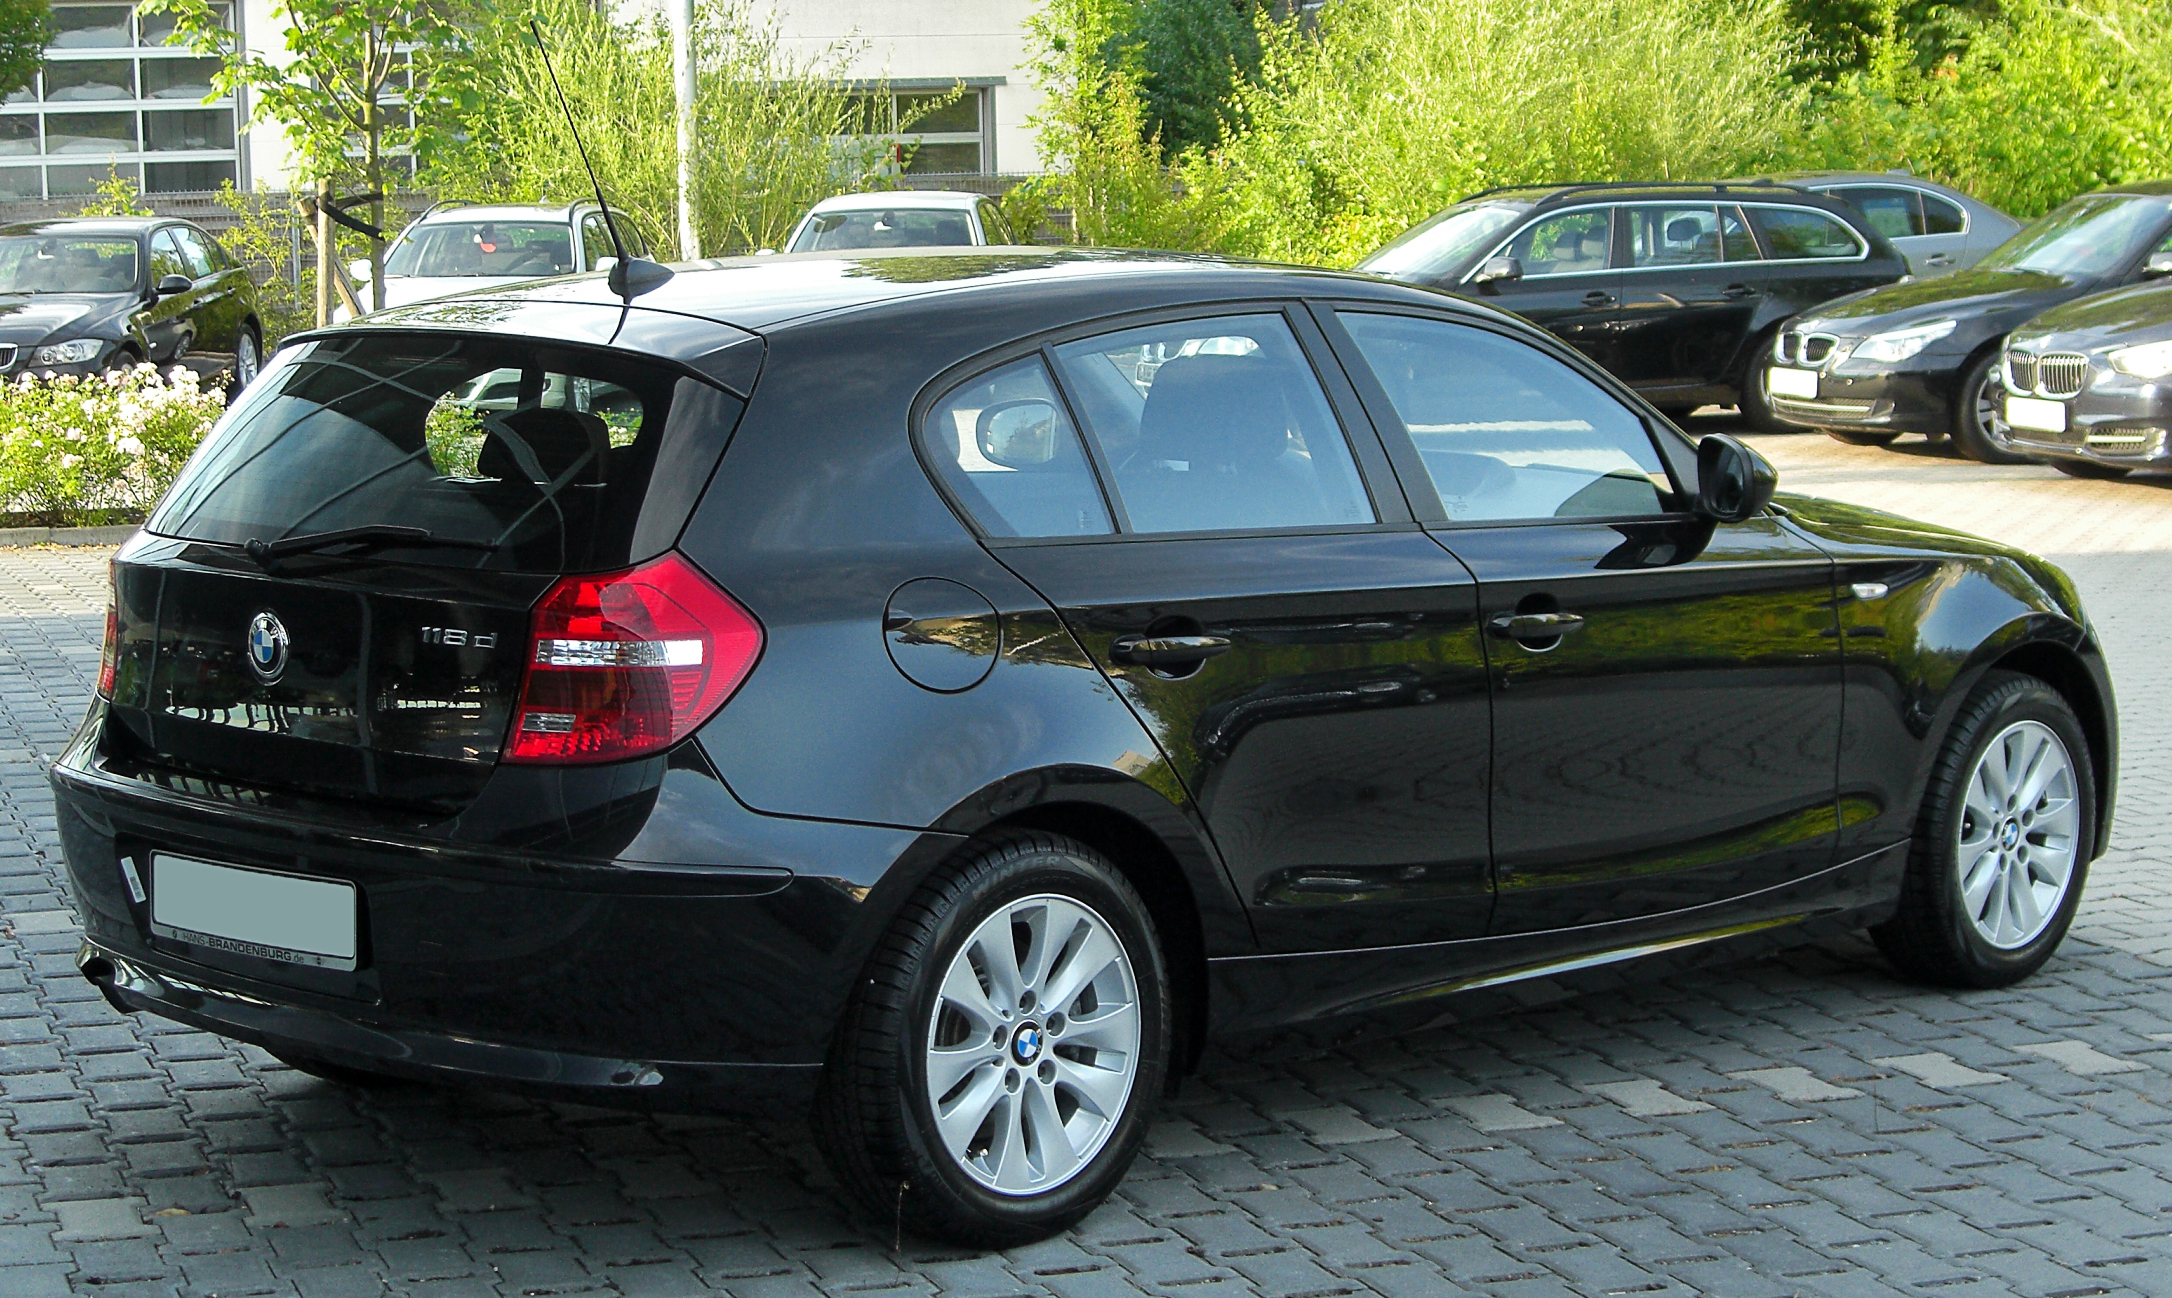 bmw 118d technical details history photos on better parts ltd. Black Bedroom Furniture Sets. Home Design Ideas